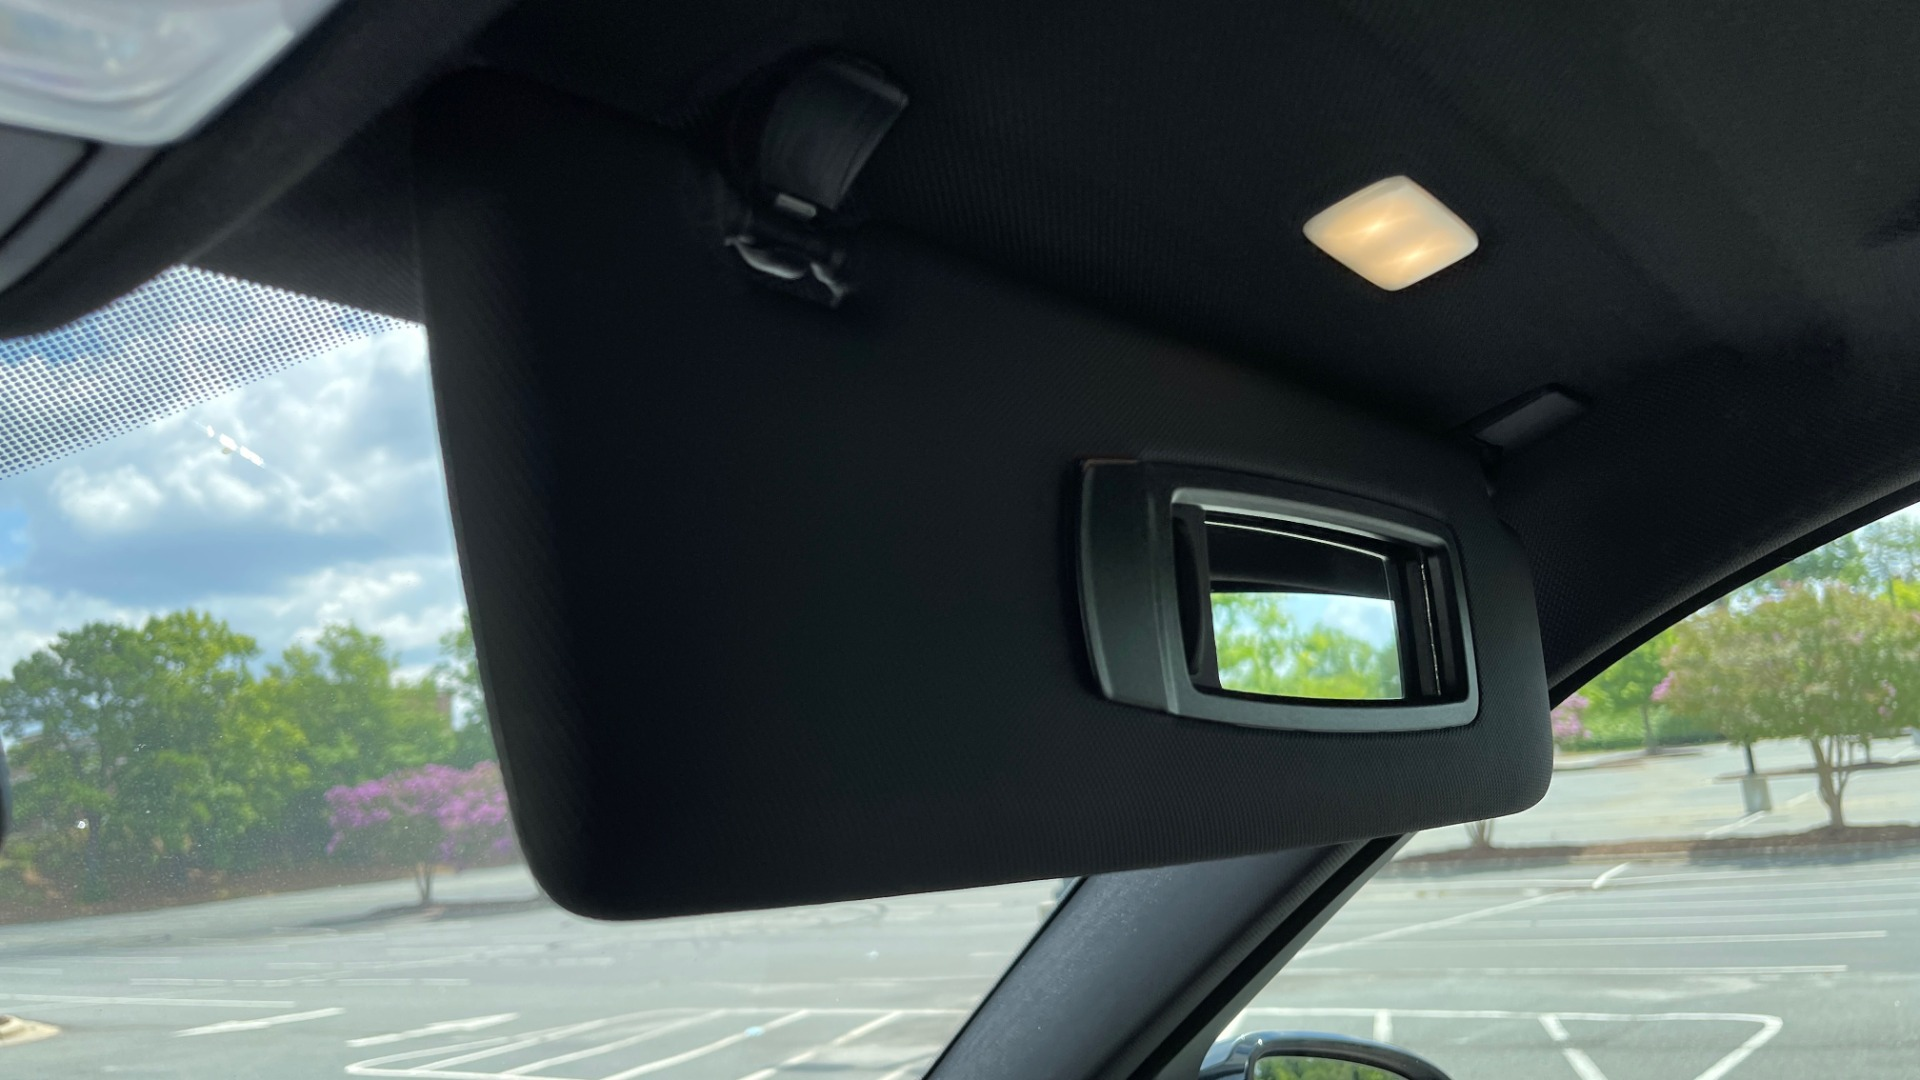 Used 2018 BMW X5 XDRIVE35I PREMIUM / DRVR ASST / WIRELESS CHARGING / CAMERAS for sale $46,995 at Formula Imports in Charlotte NC 28227 60